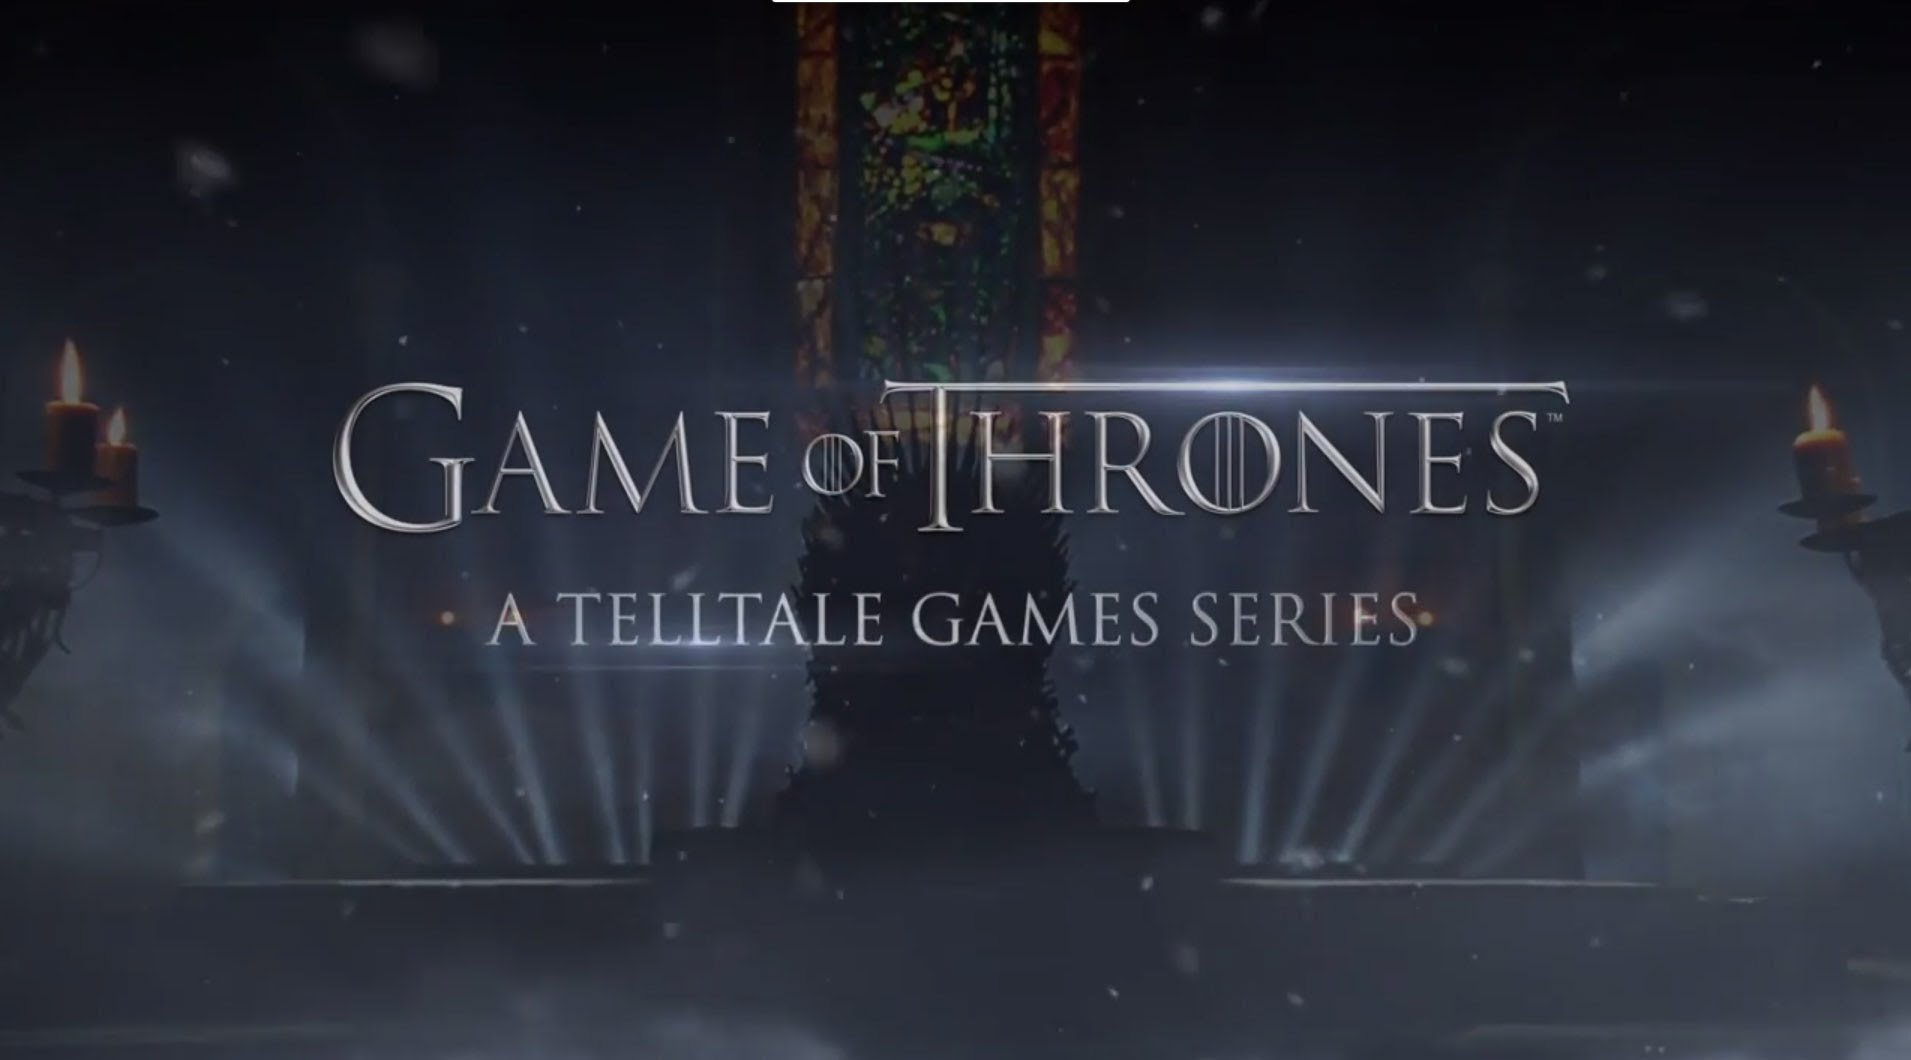 Telltale Games' Grand Vision of the Game of Thrones